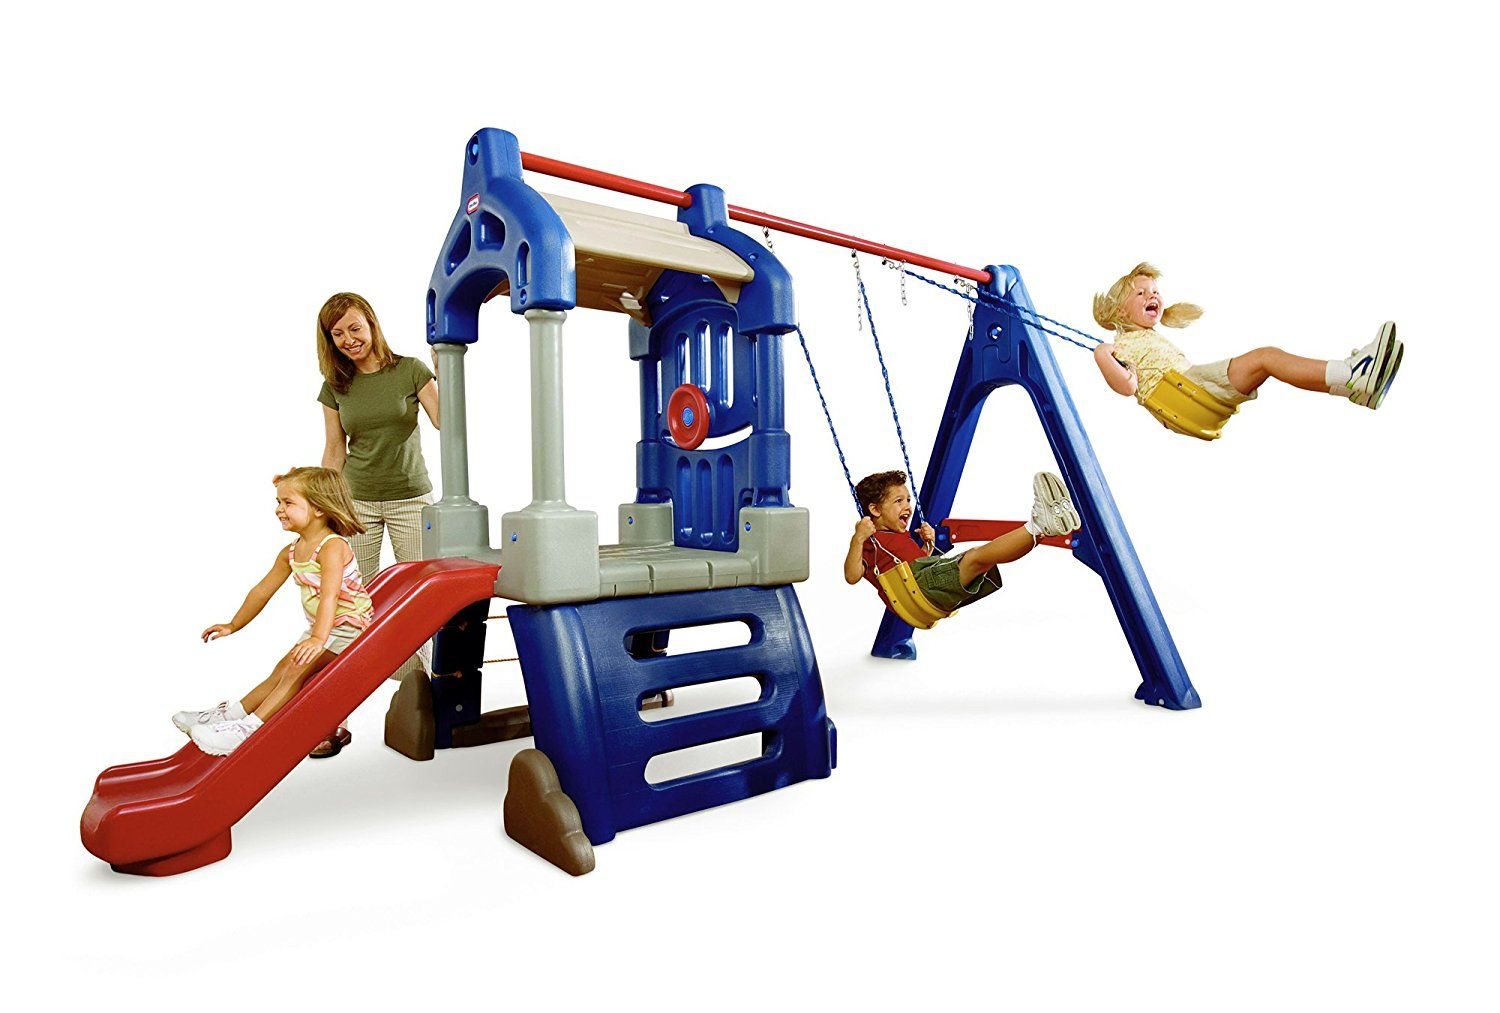 Amazon Backyard Playsets amazon: little tikes clubhouse swing set: toys & games | outdoor